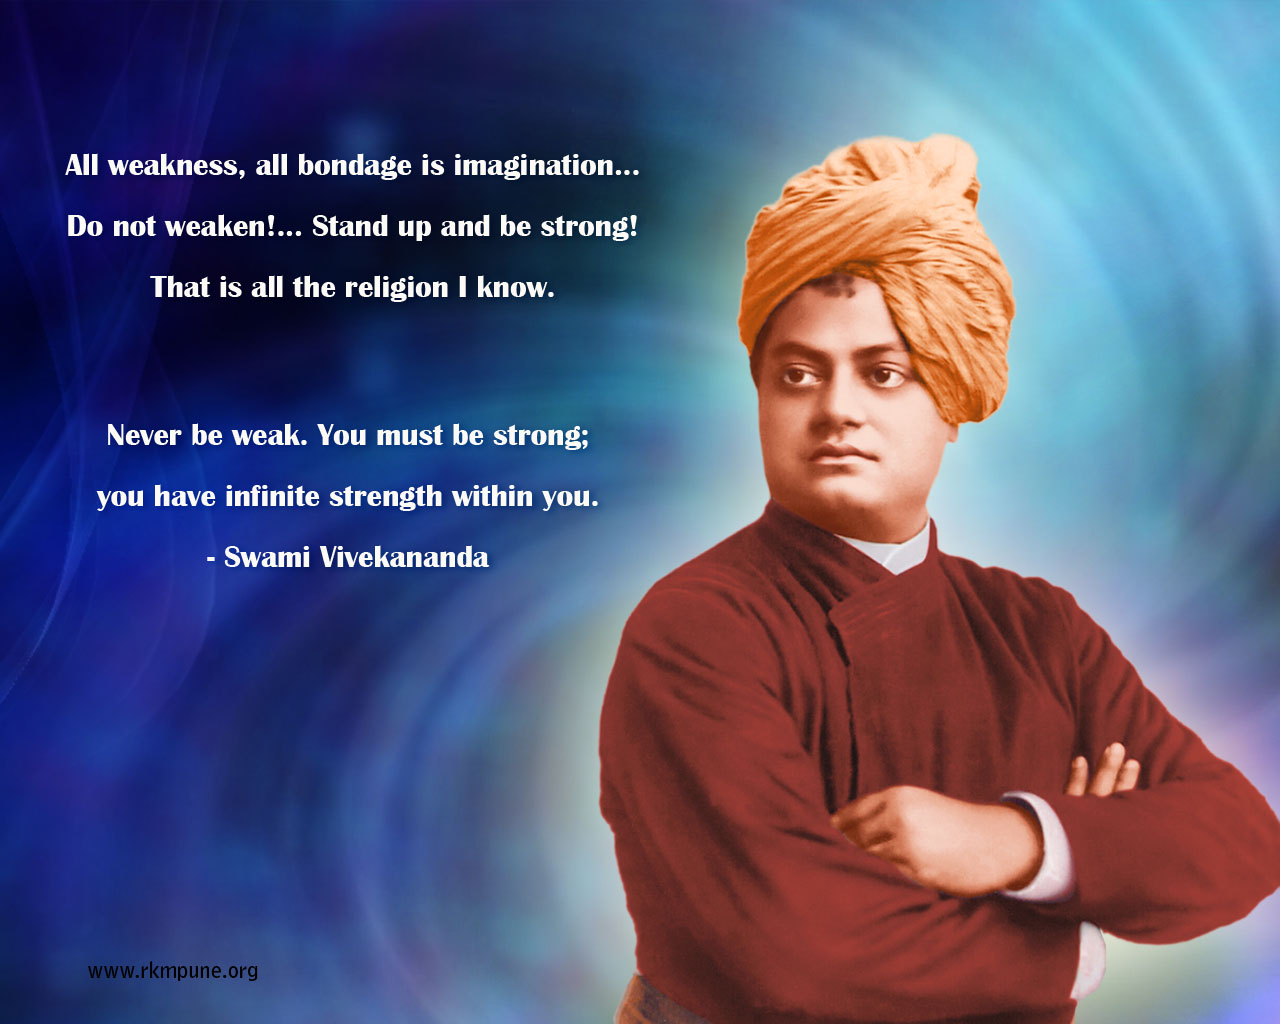 swami vivekananda inspire wallpapers download ~ spoon feeding